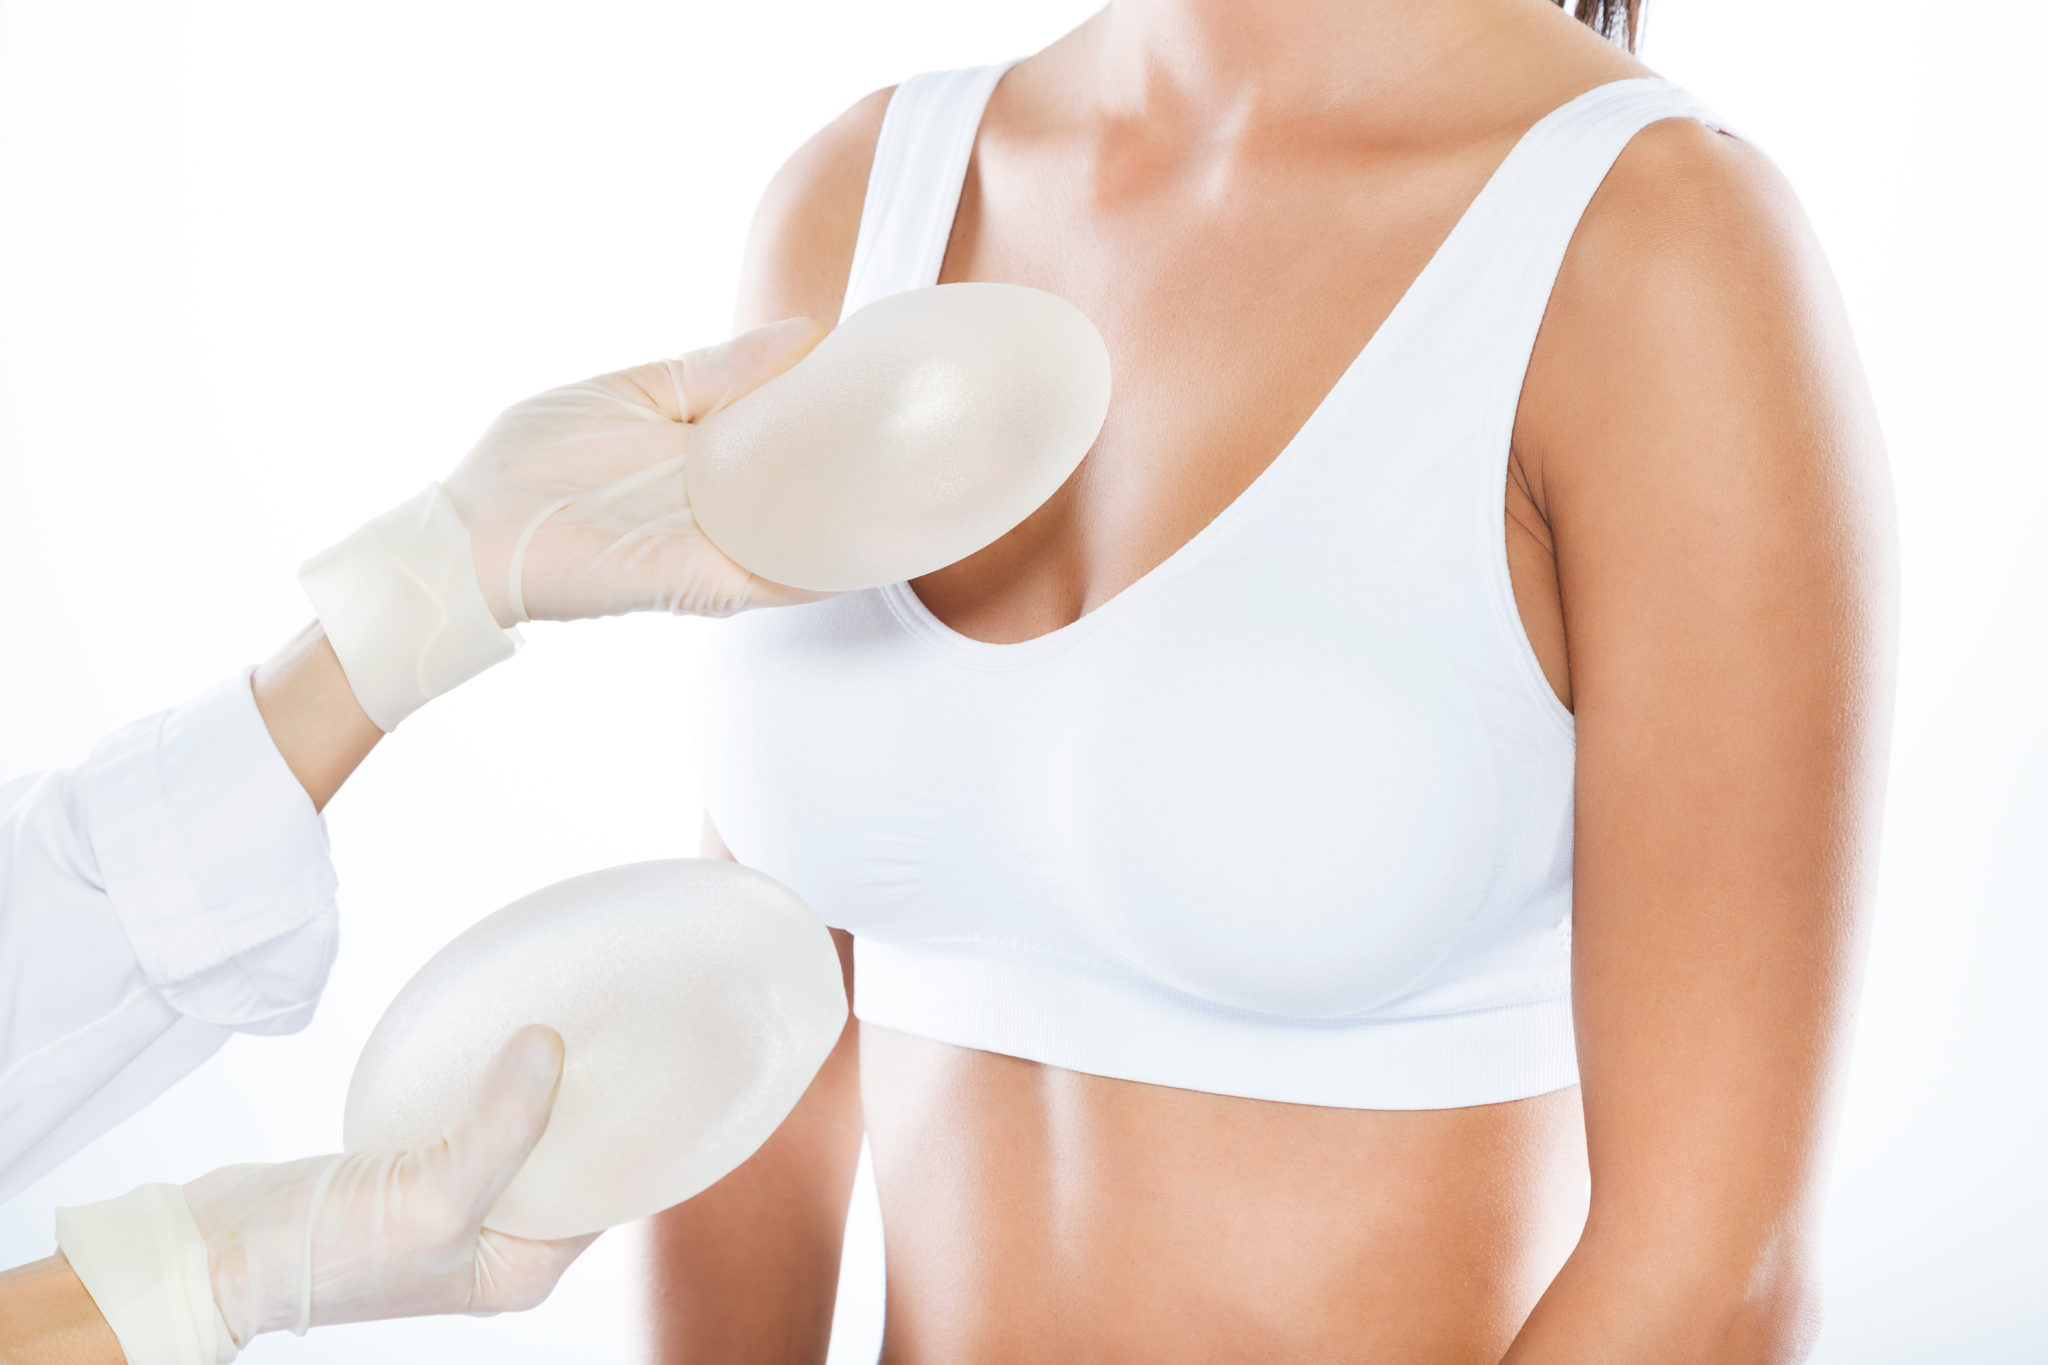 Breast Implants – Safety Update October 2019